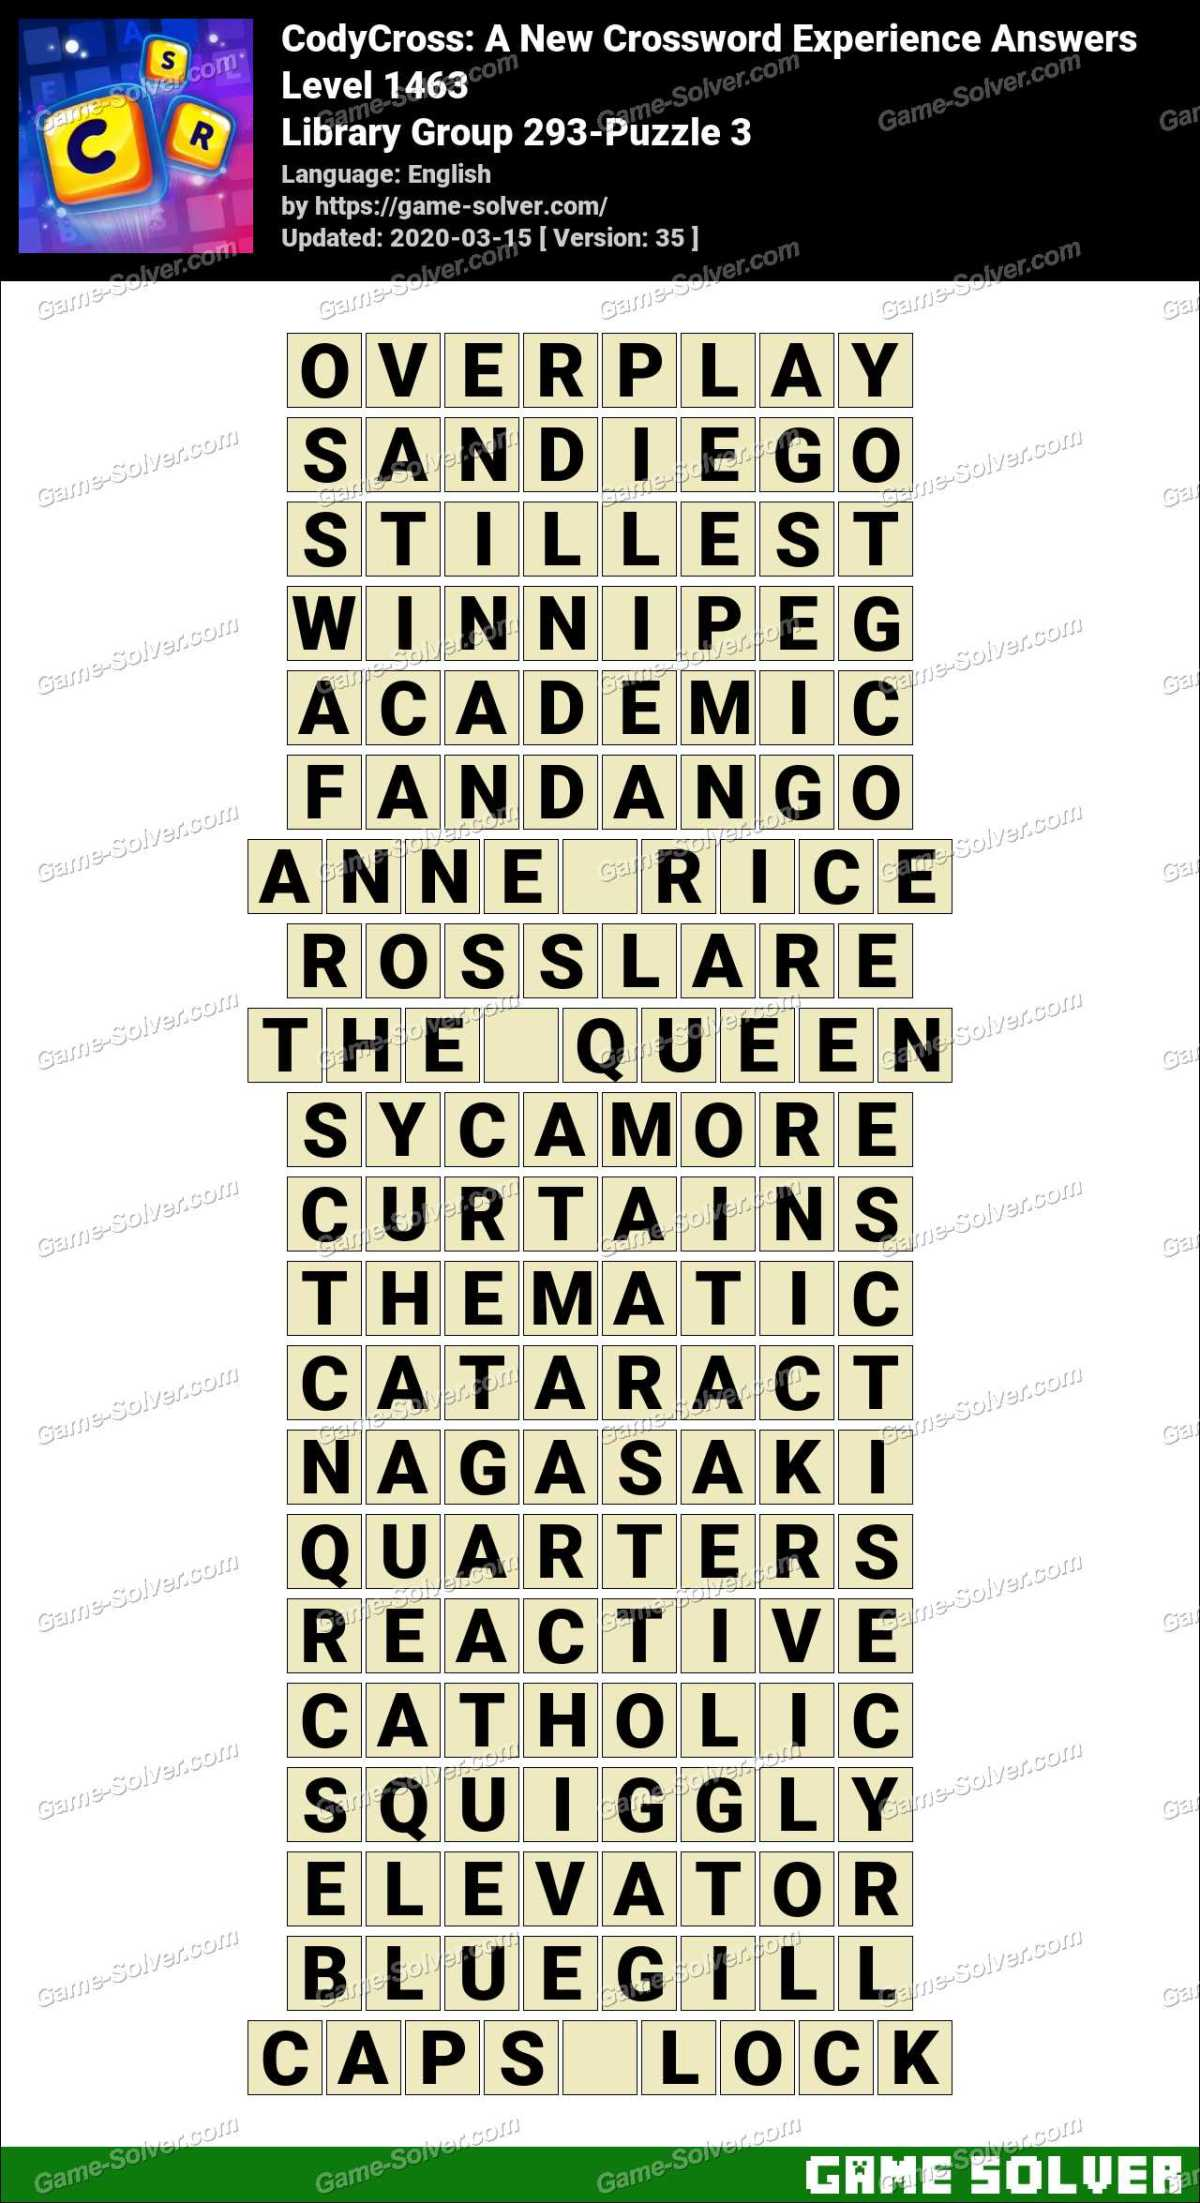 CodyCross Library Group 293-Puzzle 3 Answers